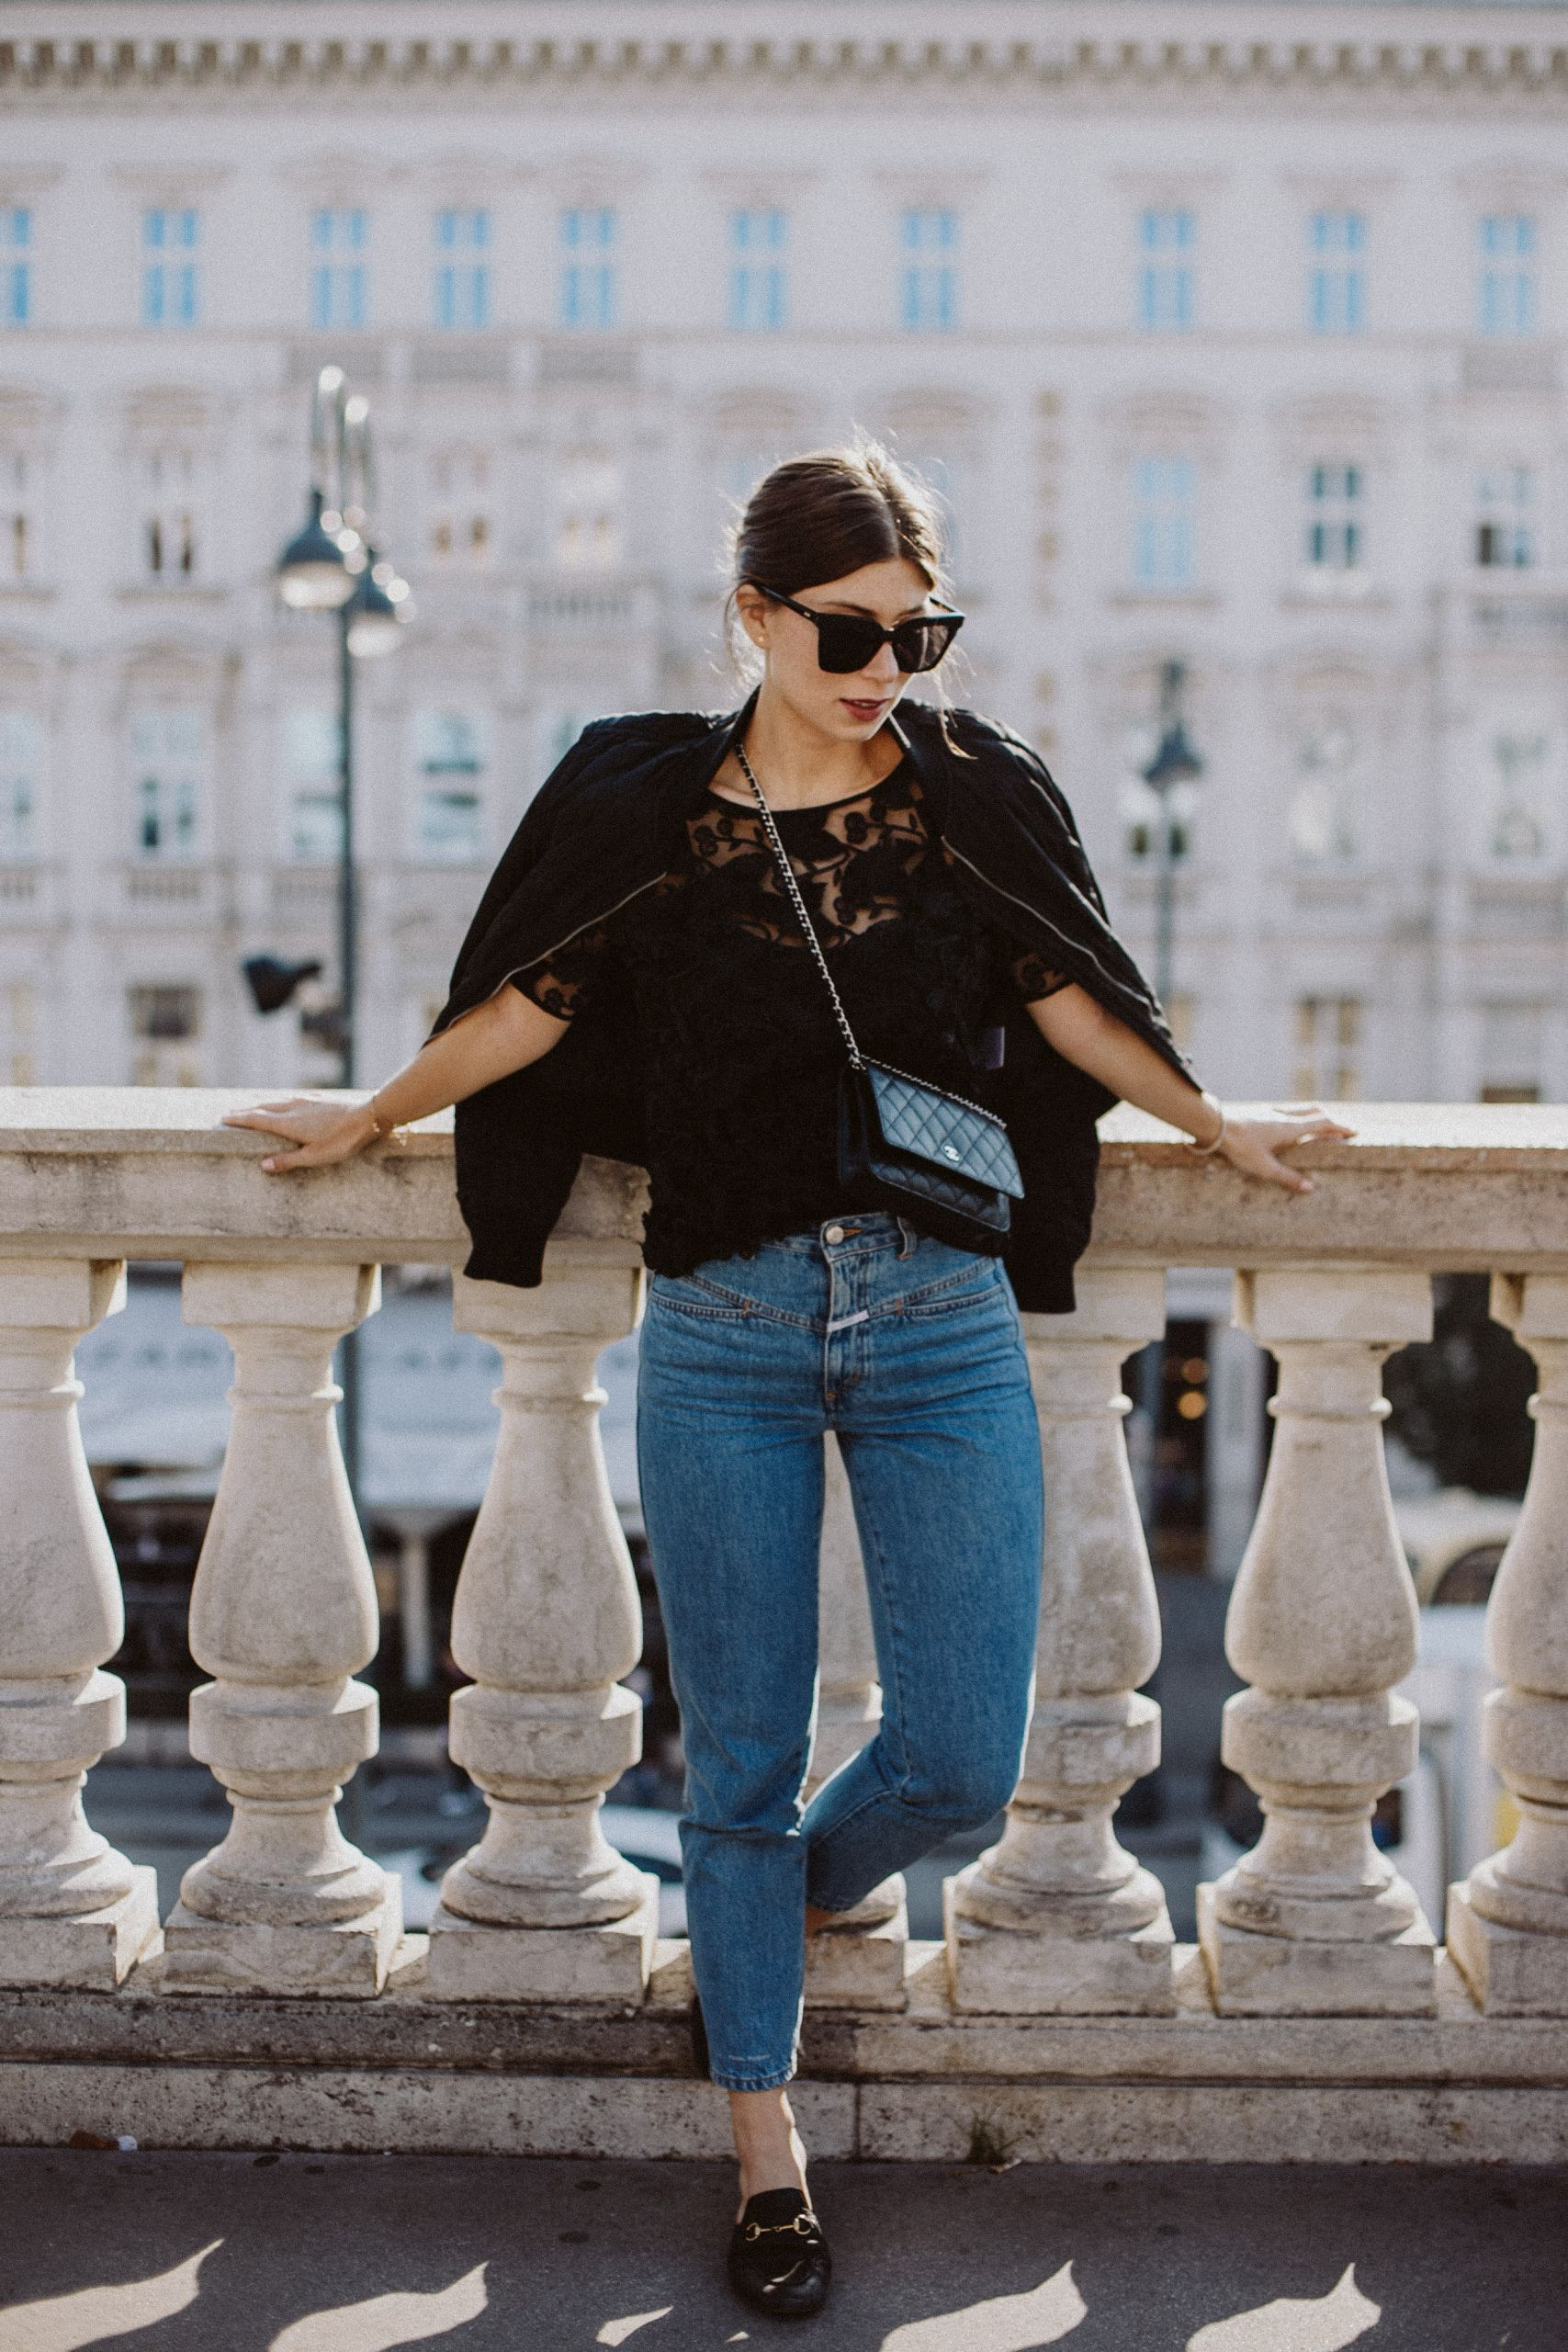 High Waisted Jeans | The Daily Dose